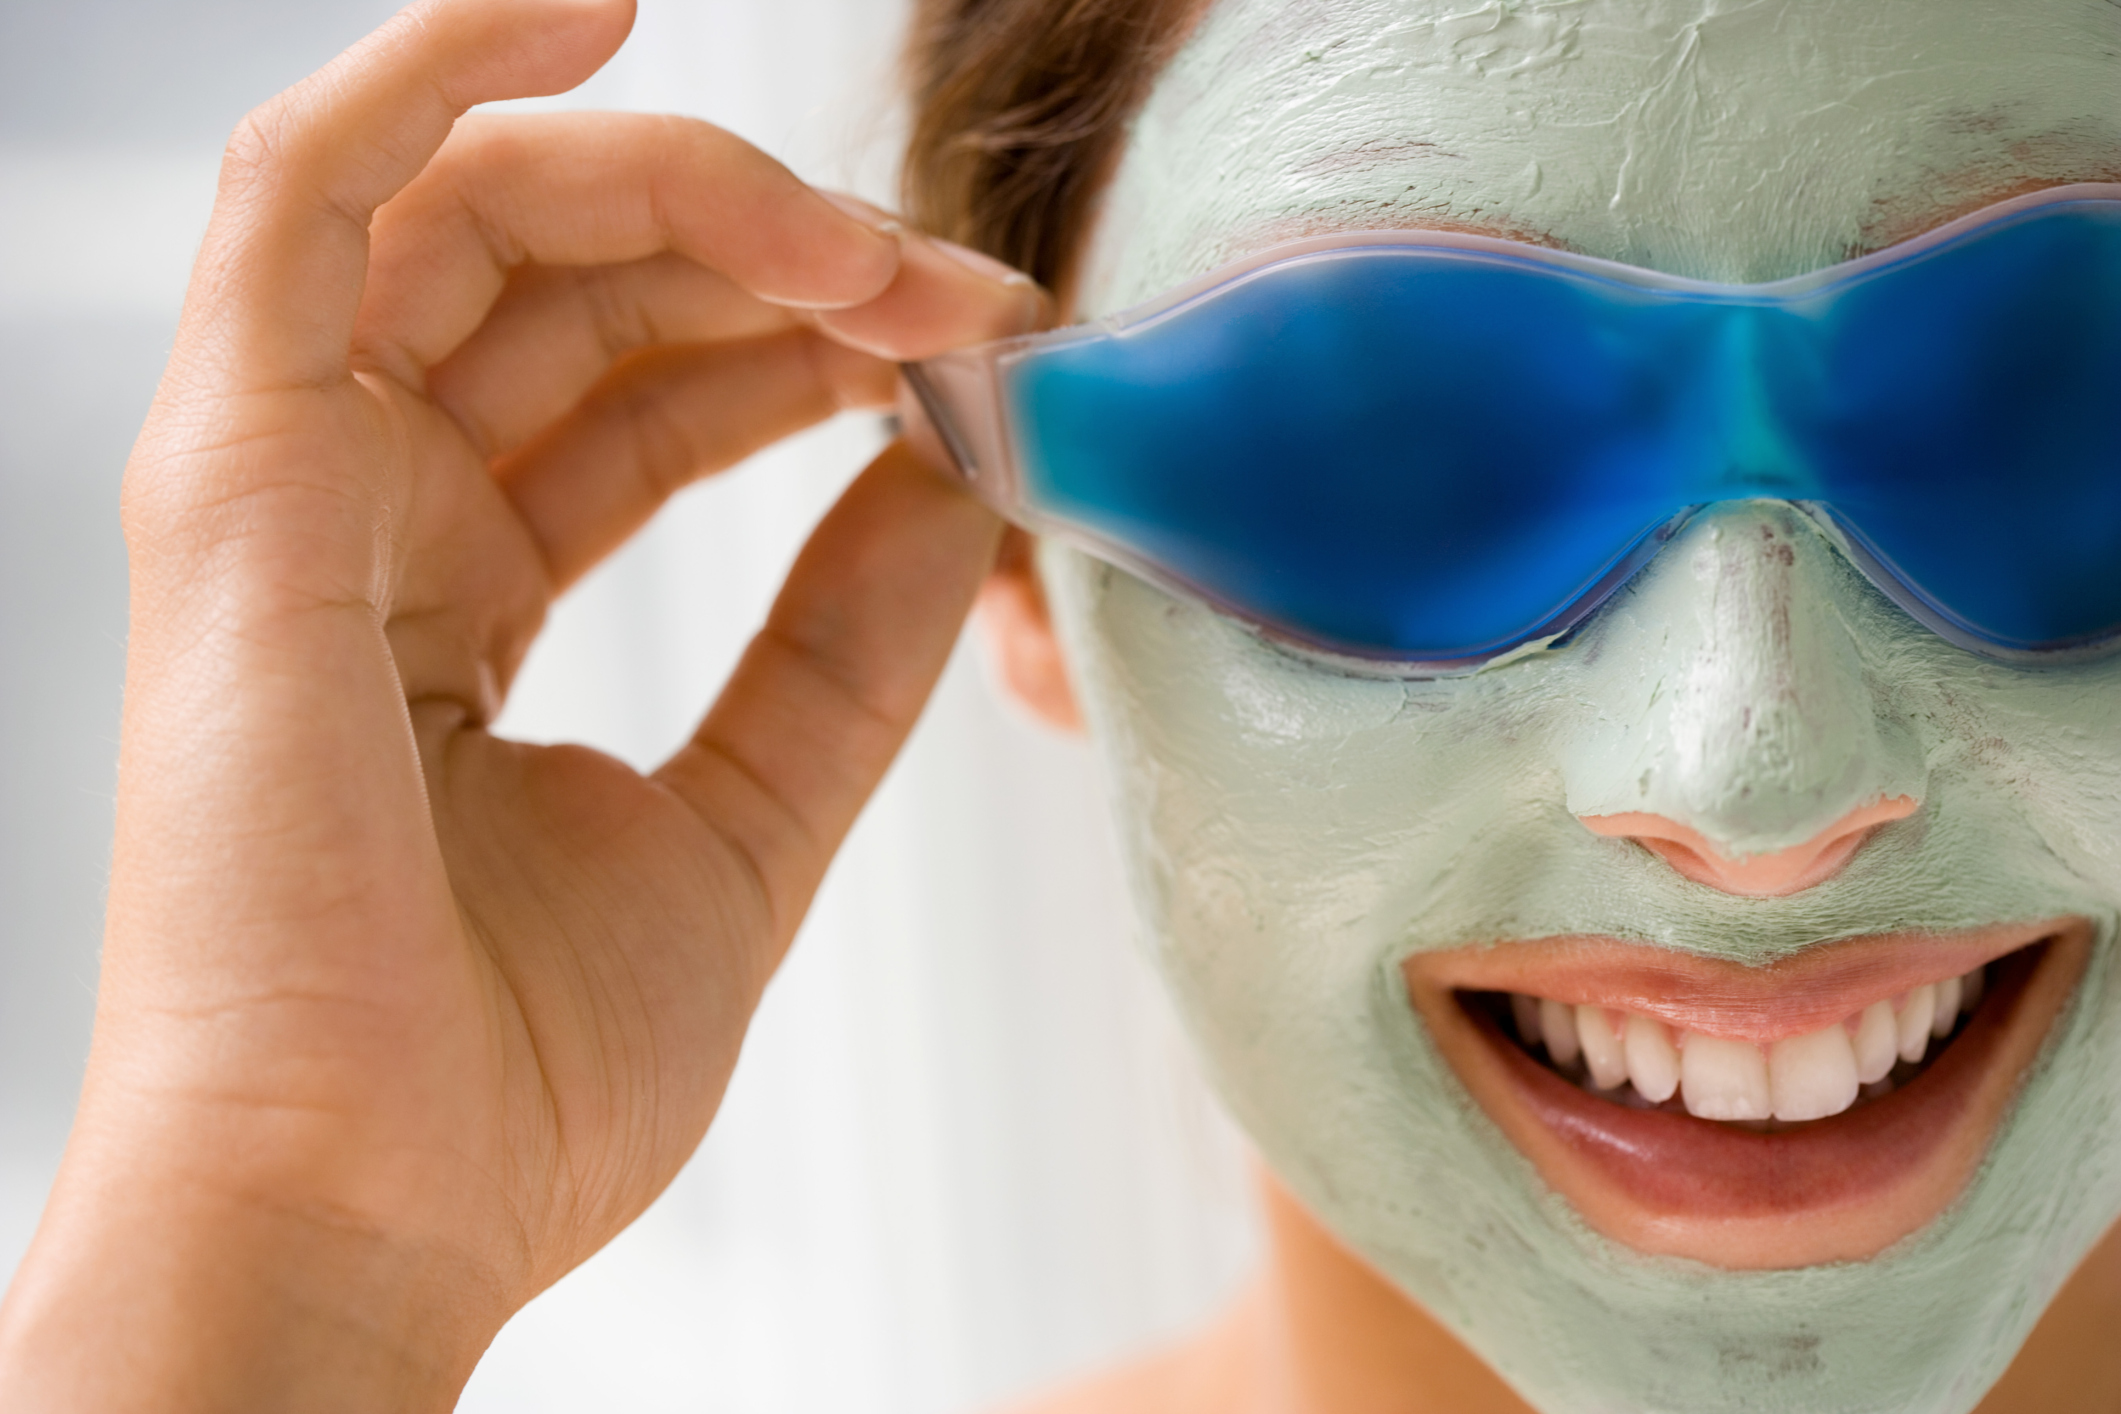 Make Homemade Facial Chemical Peels